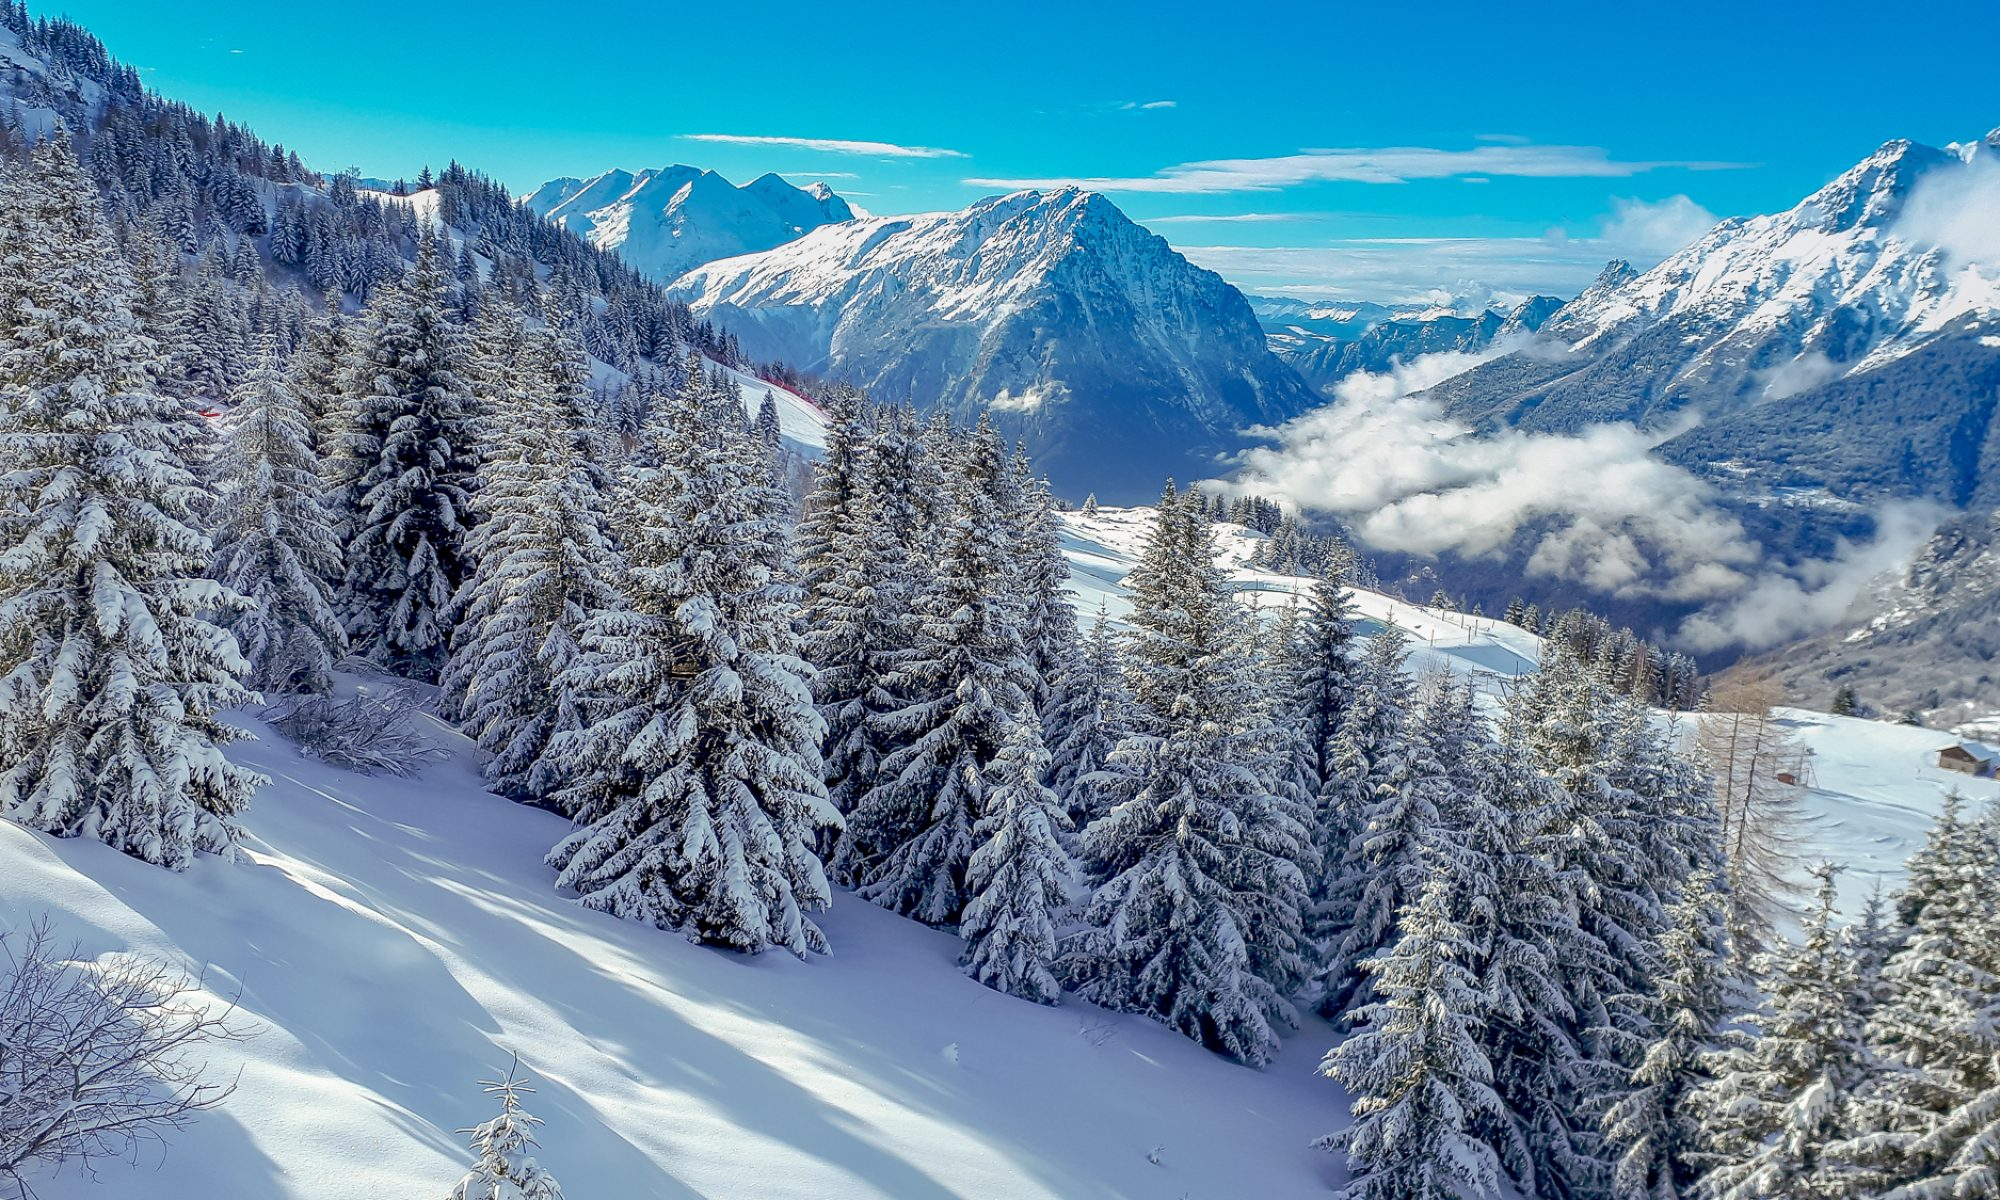 Winter Ski Holidays in Oz & Alpe d'Huez